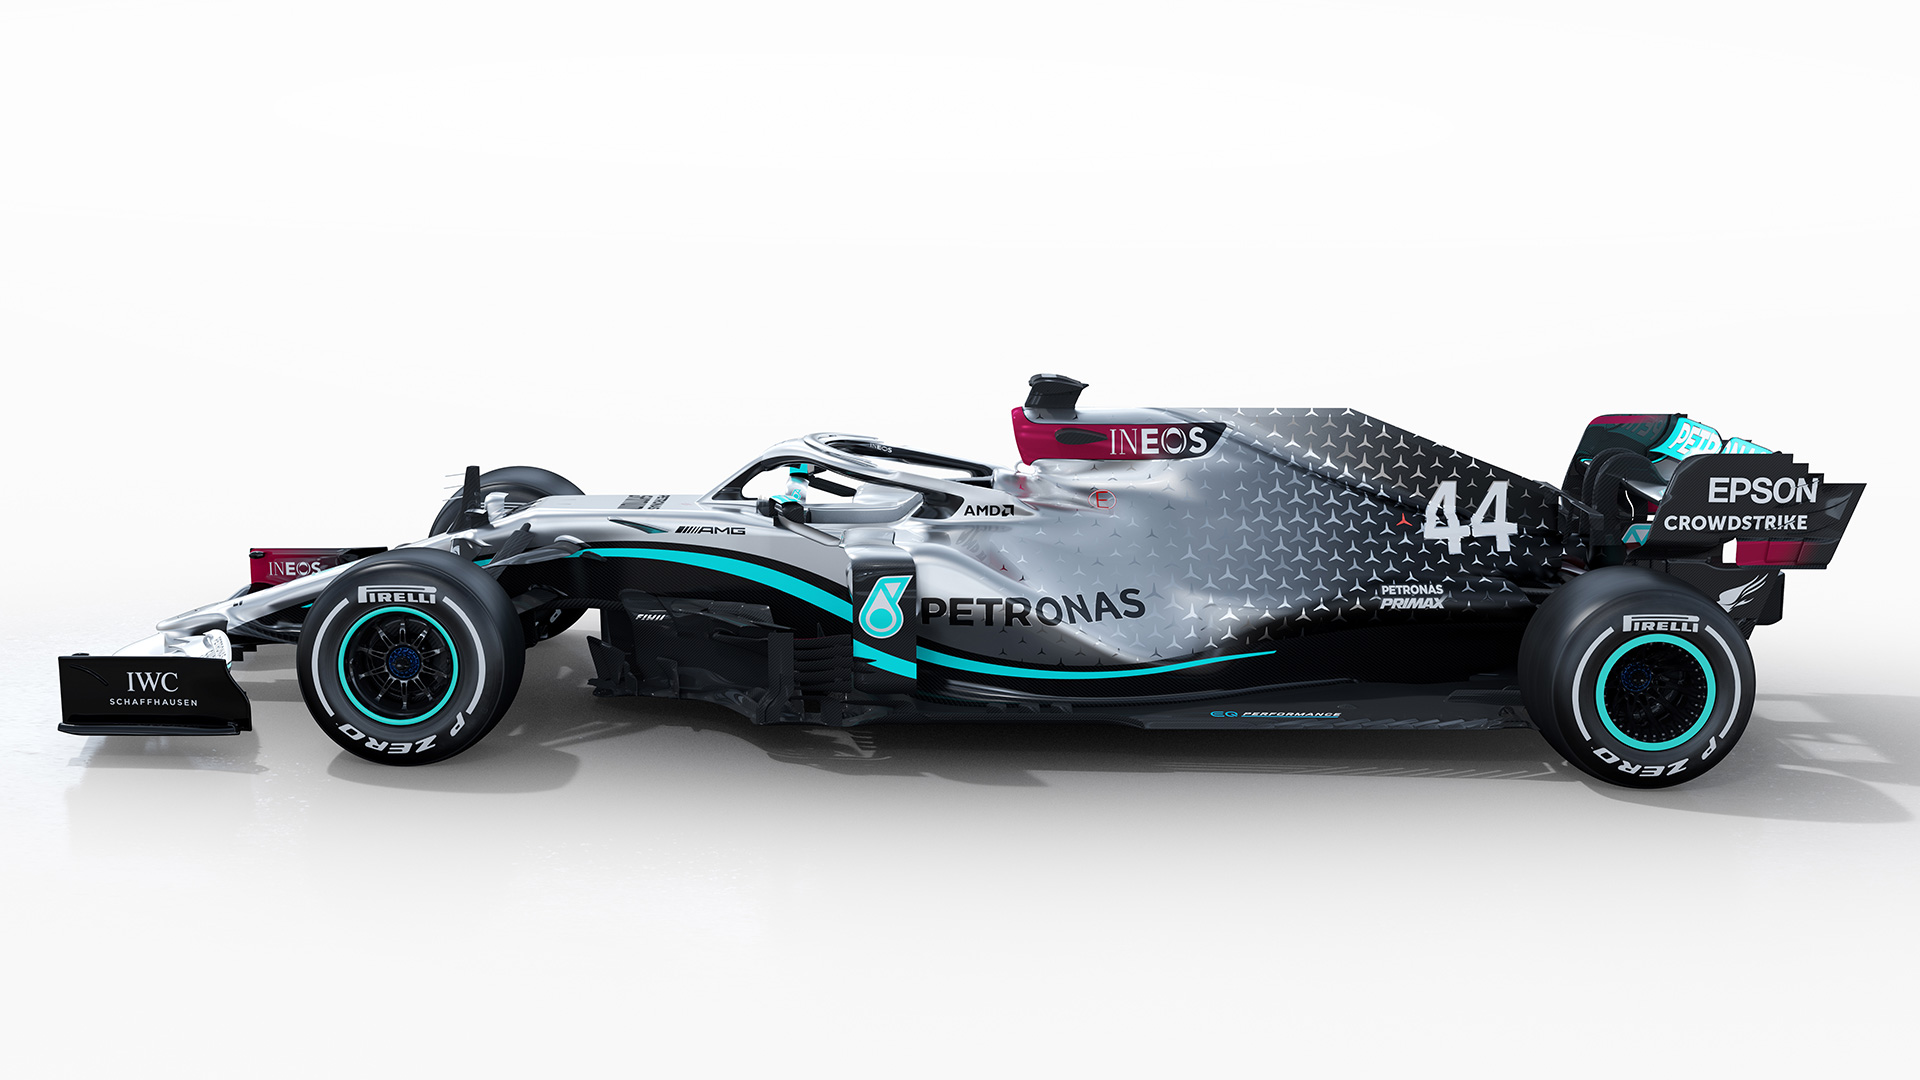 Mercedes reveal 2020 F1 car, the W11, ahead of track debut | Formula 1®